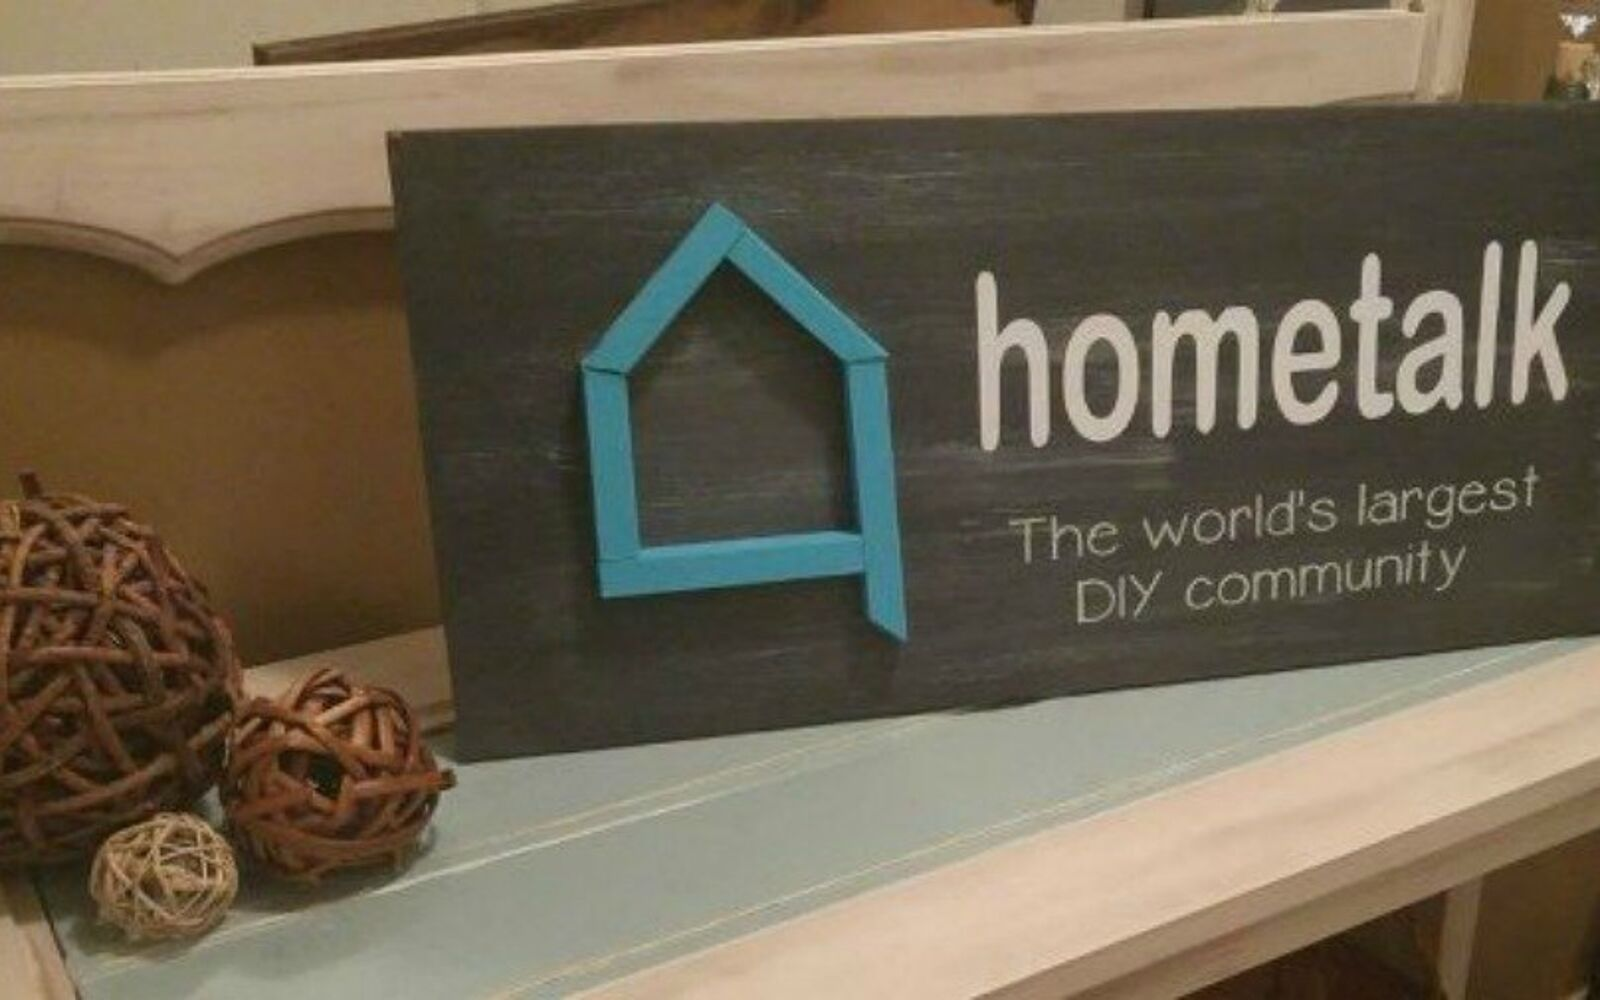 s why everyone is using hometalk blue in their home, home decor, It makes a great 3D sign